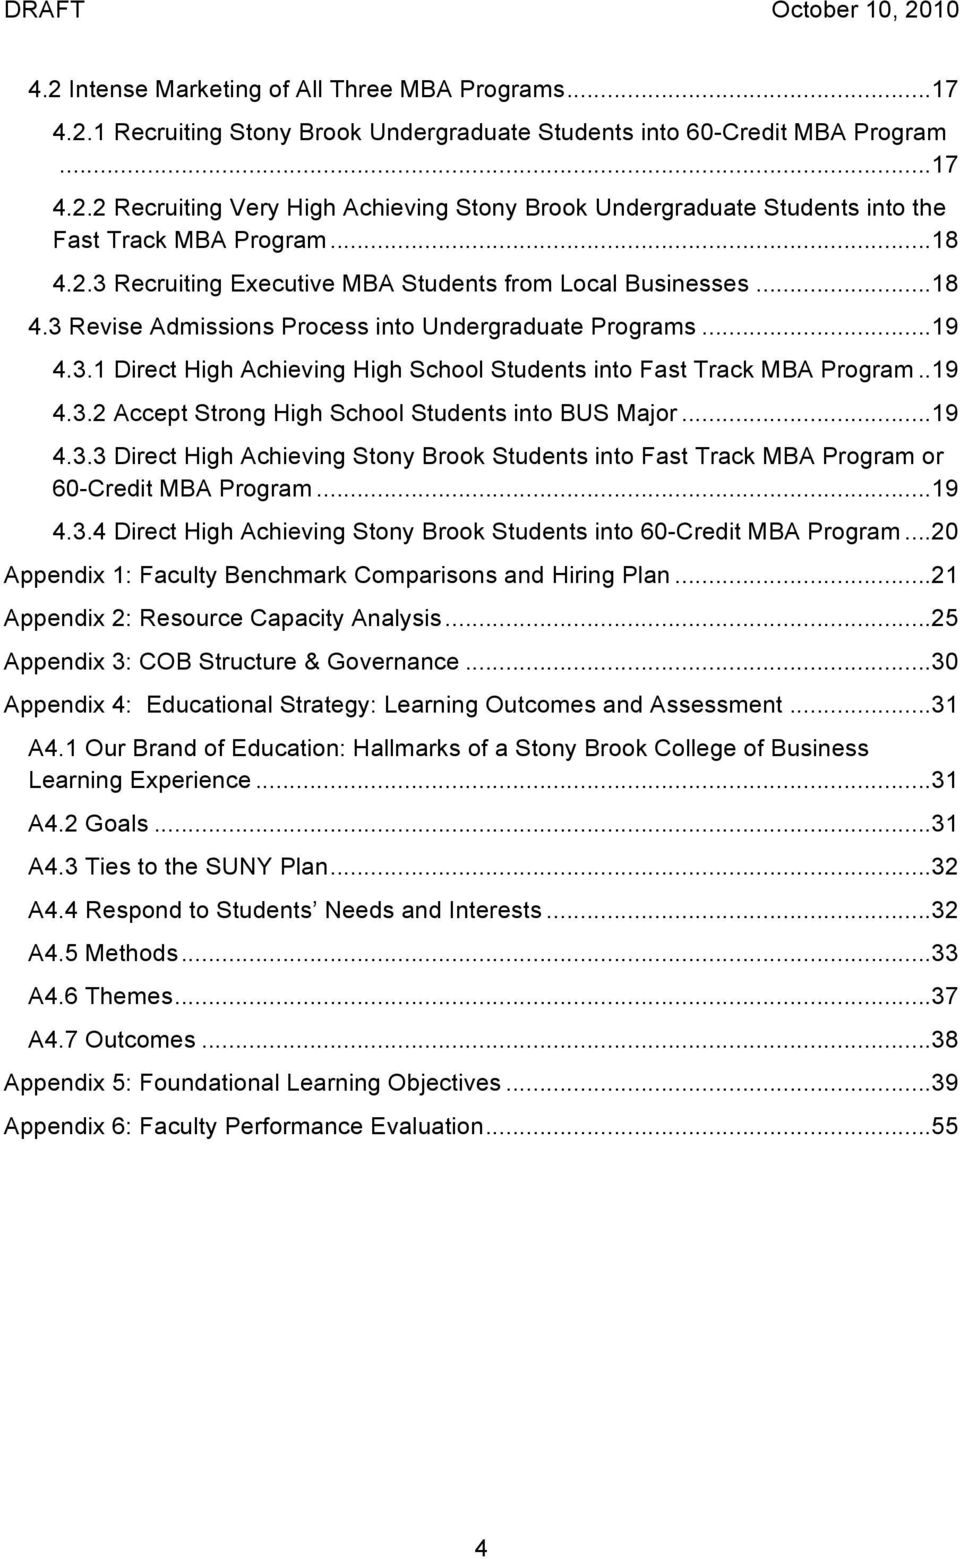 .19 4.3.2 Accept Strong High School Students into BUS Major...19 4.3.3 Direct High Achieving Stony Brook Students into Fast Track MBA Program or 60-Credit MBA Program...19 4.3.4 Direct High Achieving Stony Brook Students into 60-Credit MBA Program.